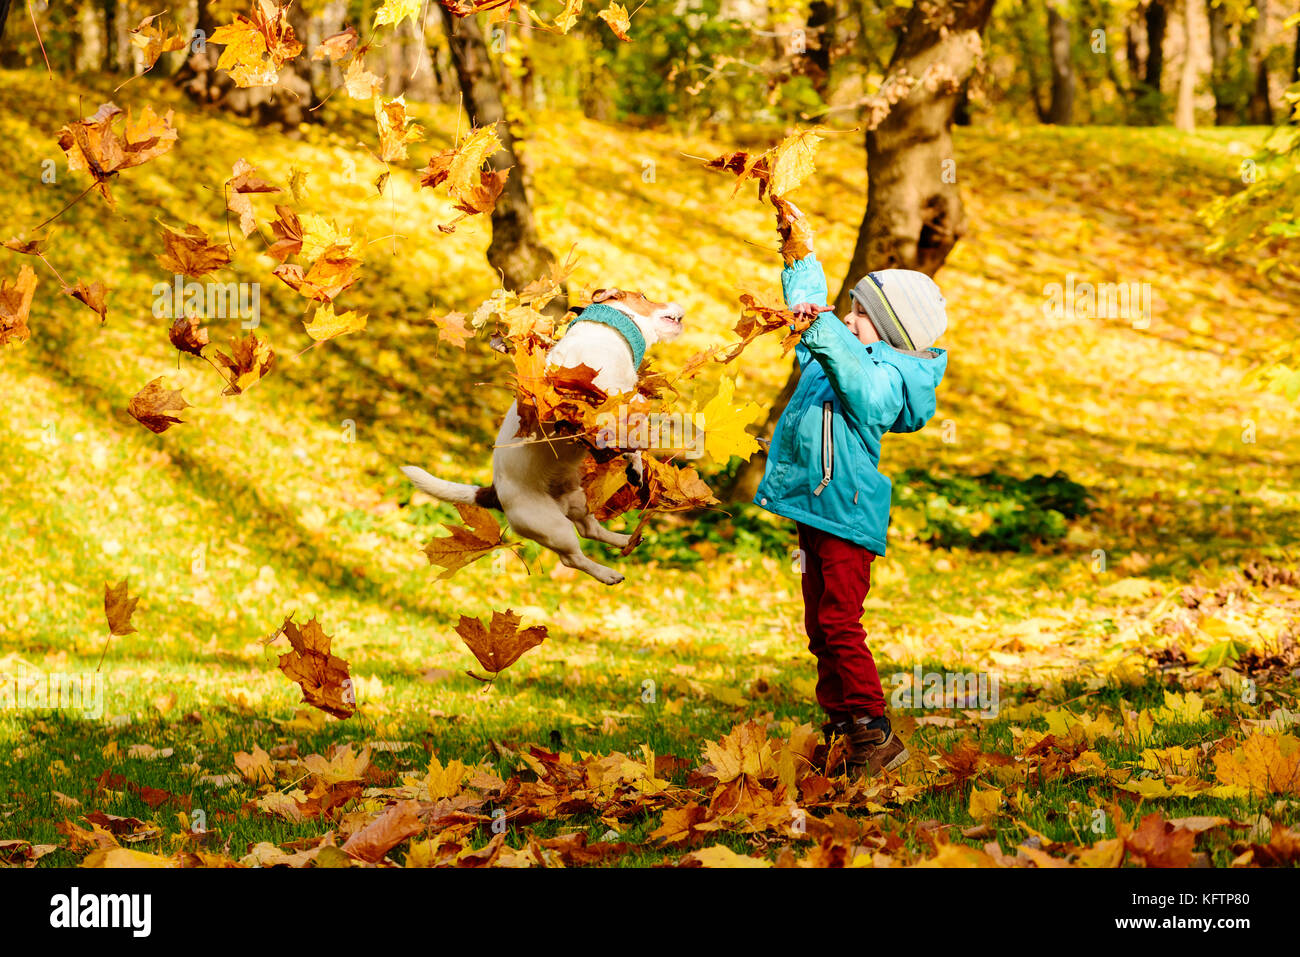 Family fun time at autumn park with kid and pet dog - Stock Image